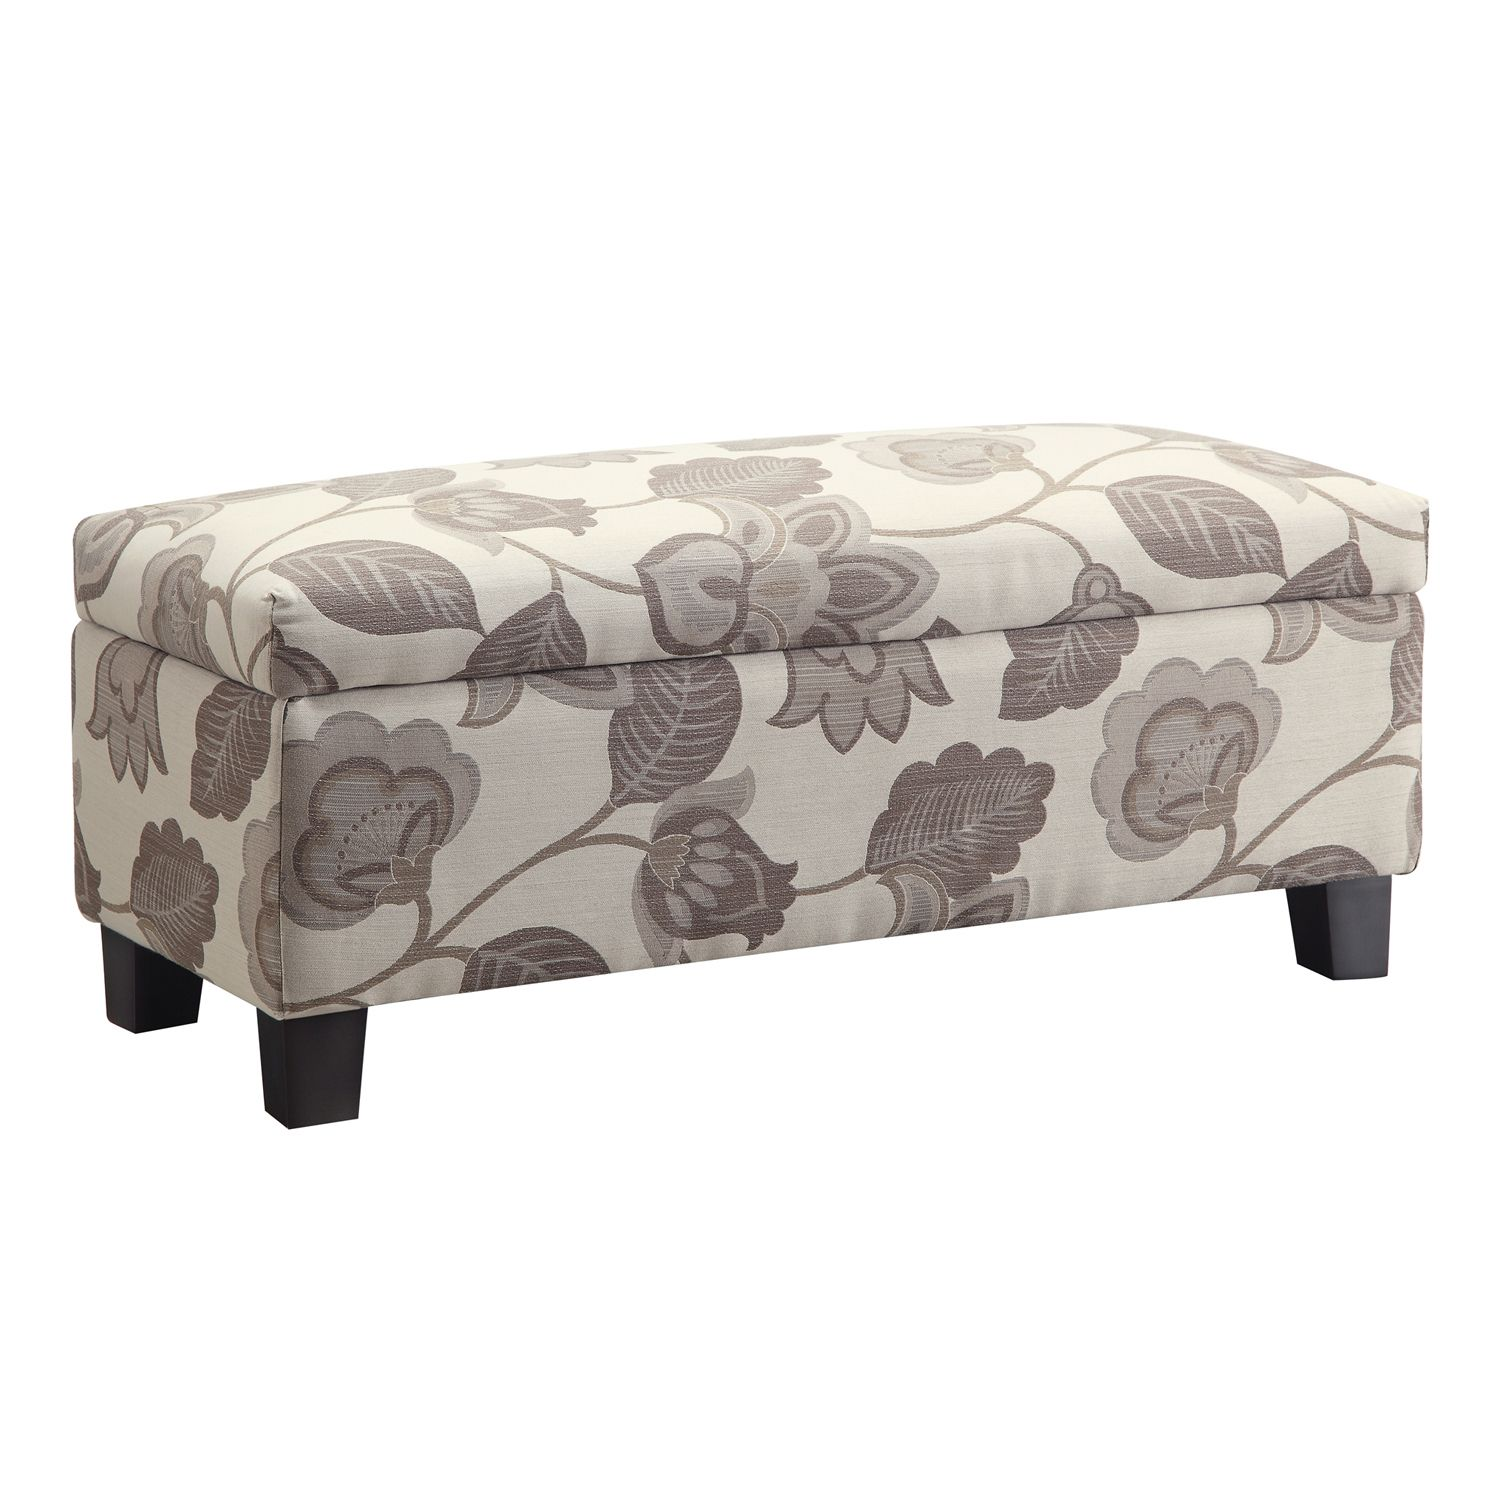 Furniture For Sale HomeVance Annabelle Storage Bench